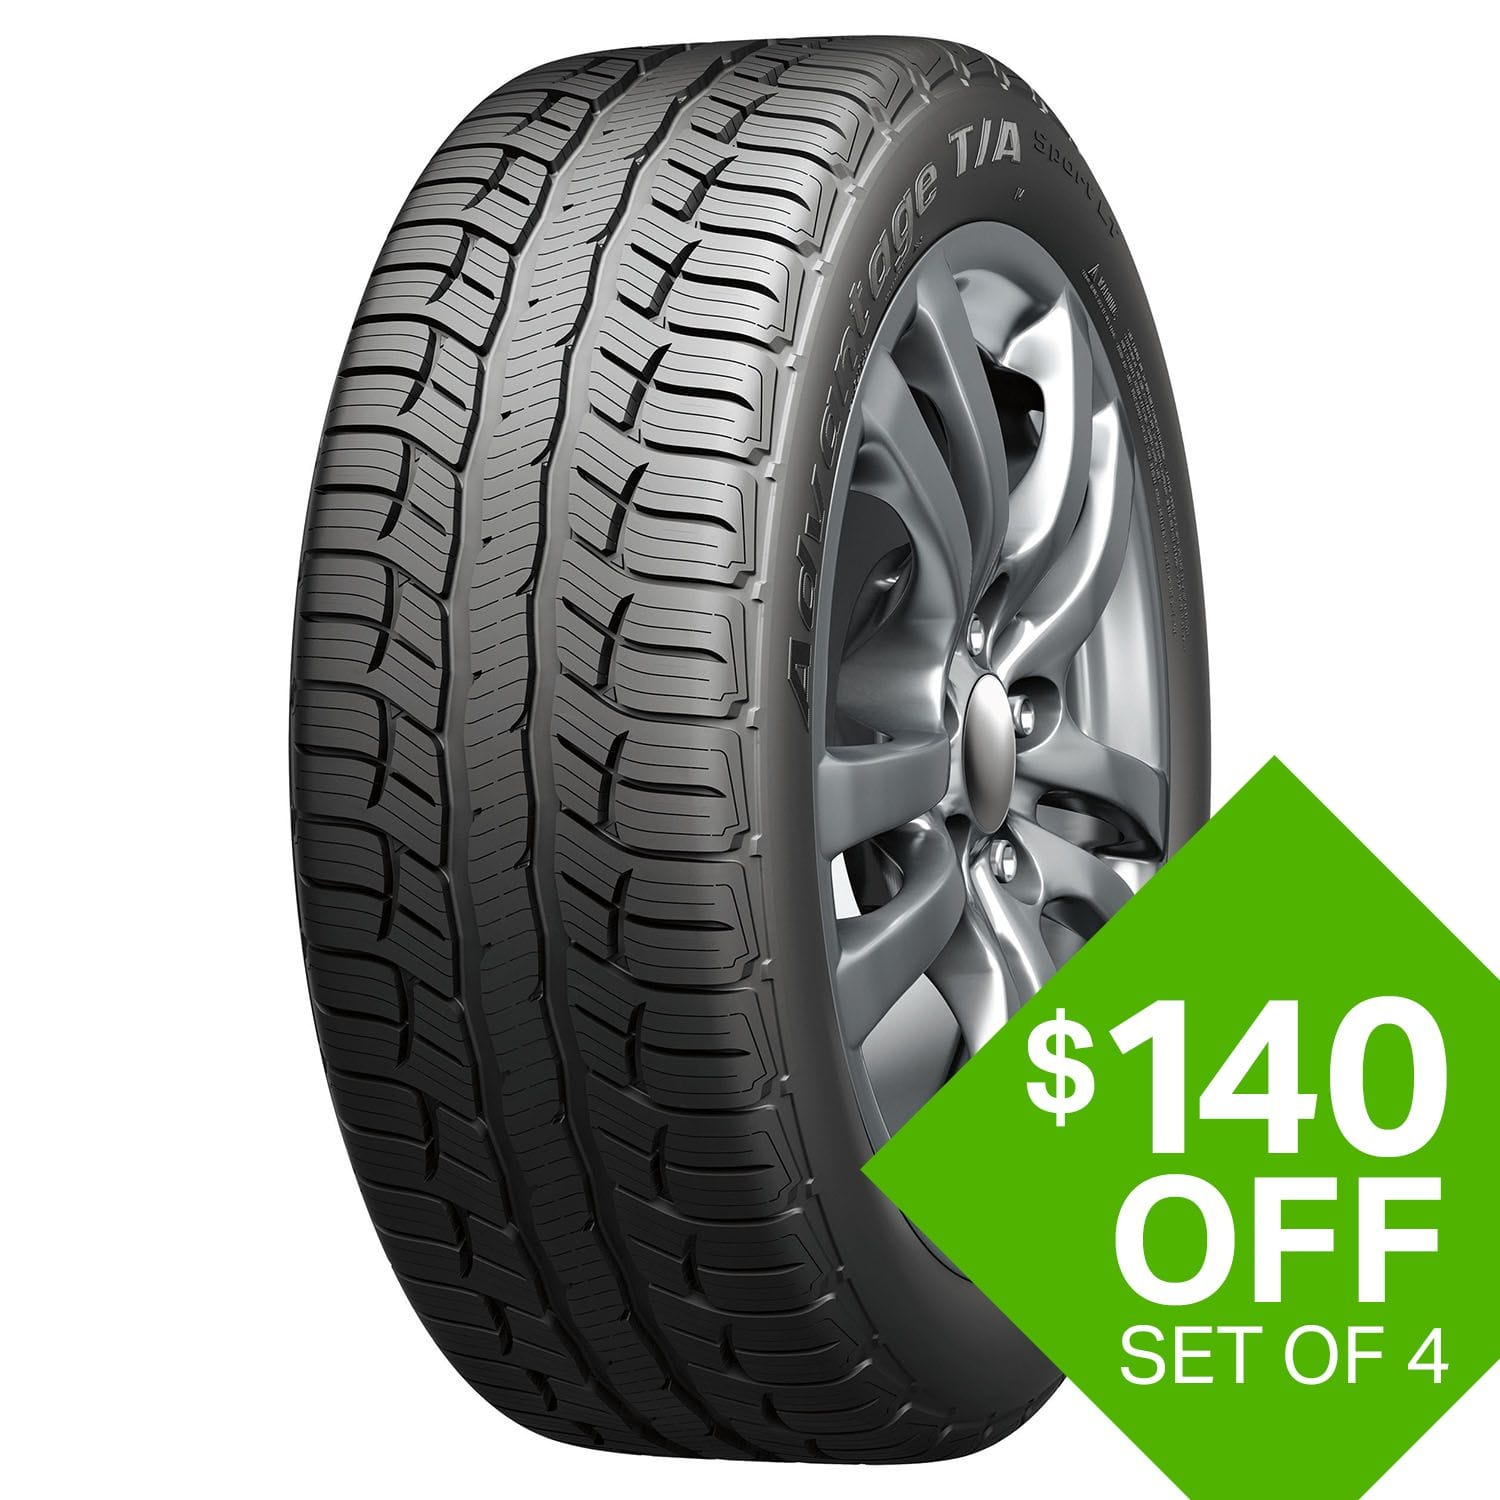 Sam S Club Members Set Of 4 Bf Goodrich Tires W Installation